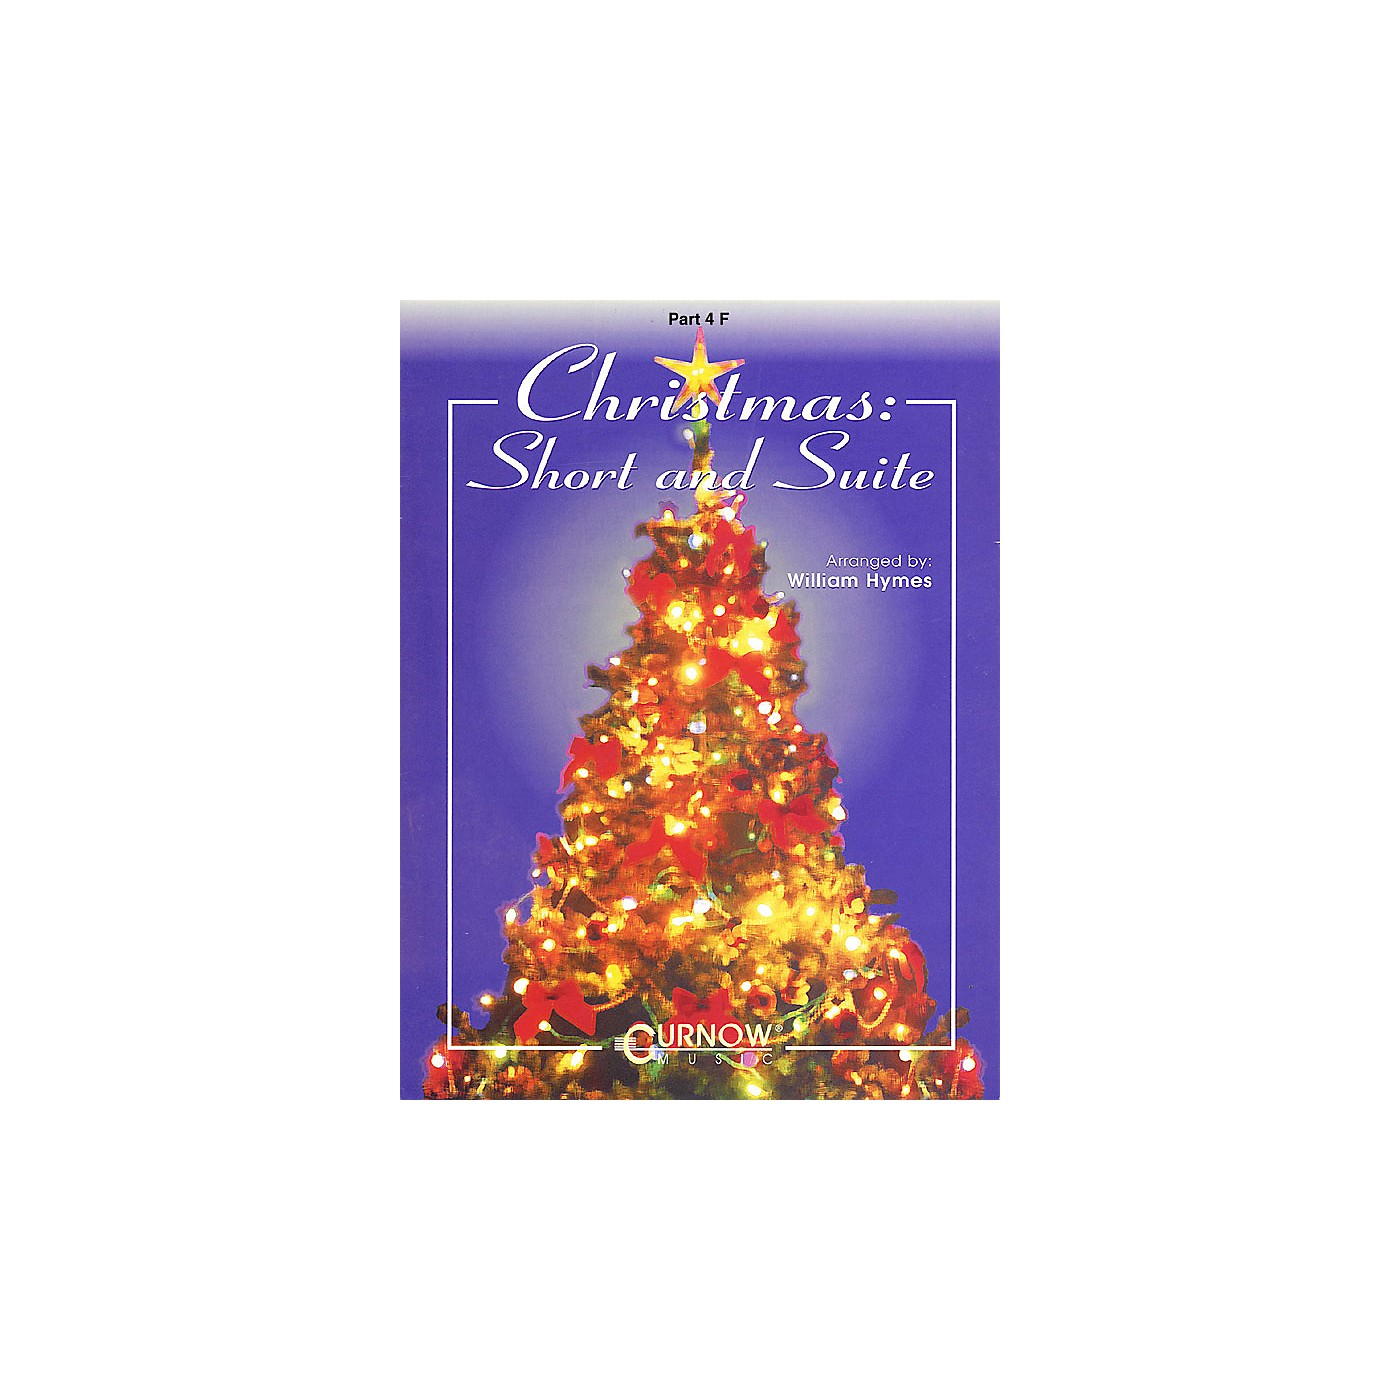 Curnow Music Christmas: Short and Suite (Part 4 - F Instruments) Concert Band Level 2-4 Arranged by William Himes thumbnail